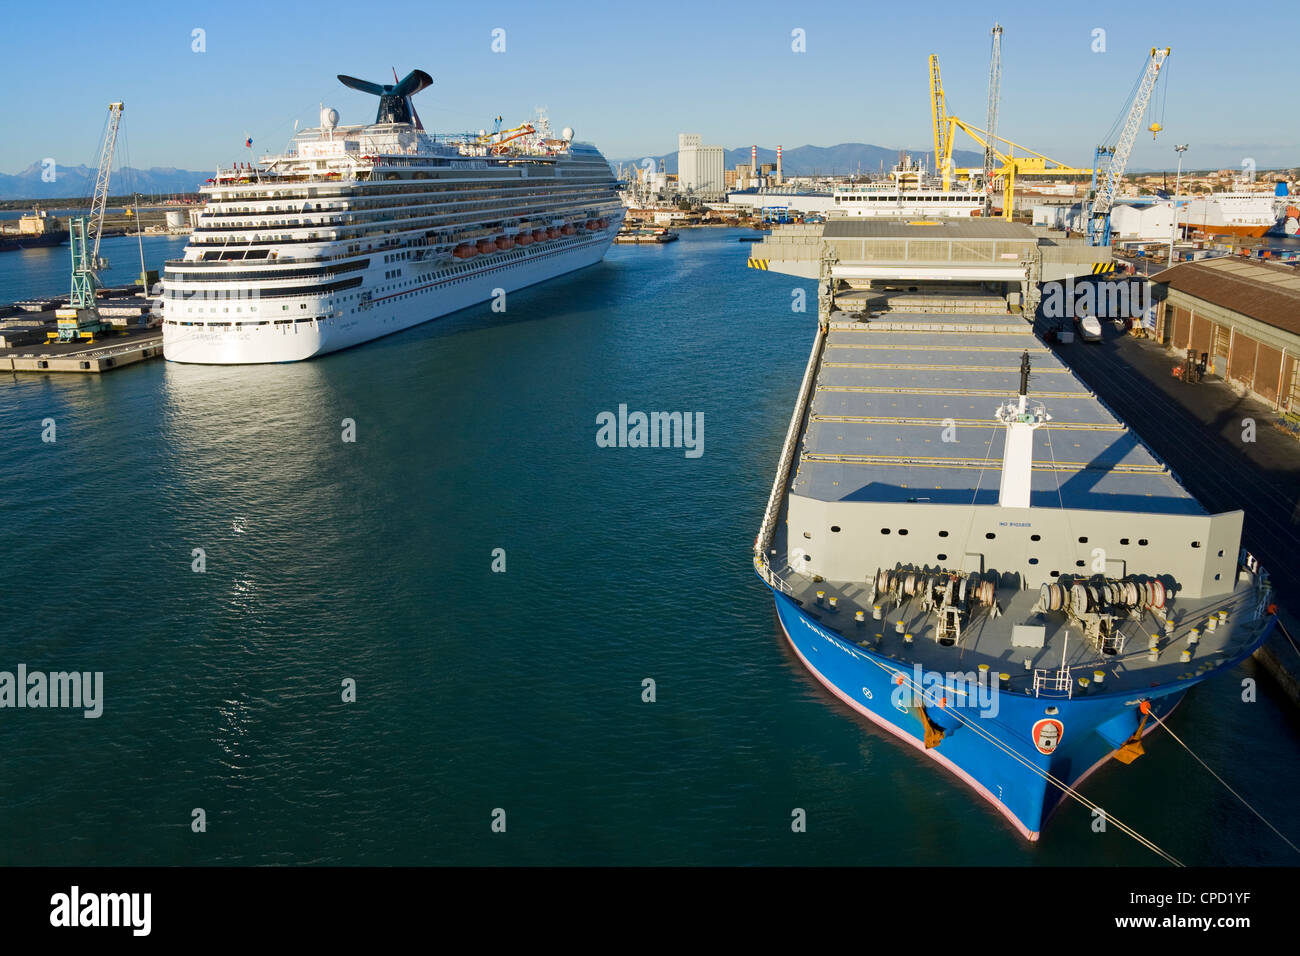 Cargo And Cruise Ship In The Port Of Livorno Tuscany Italy - Cargo cruise ship